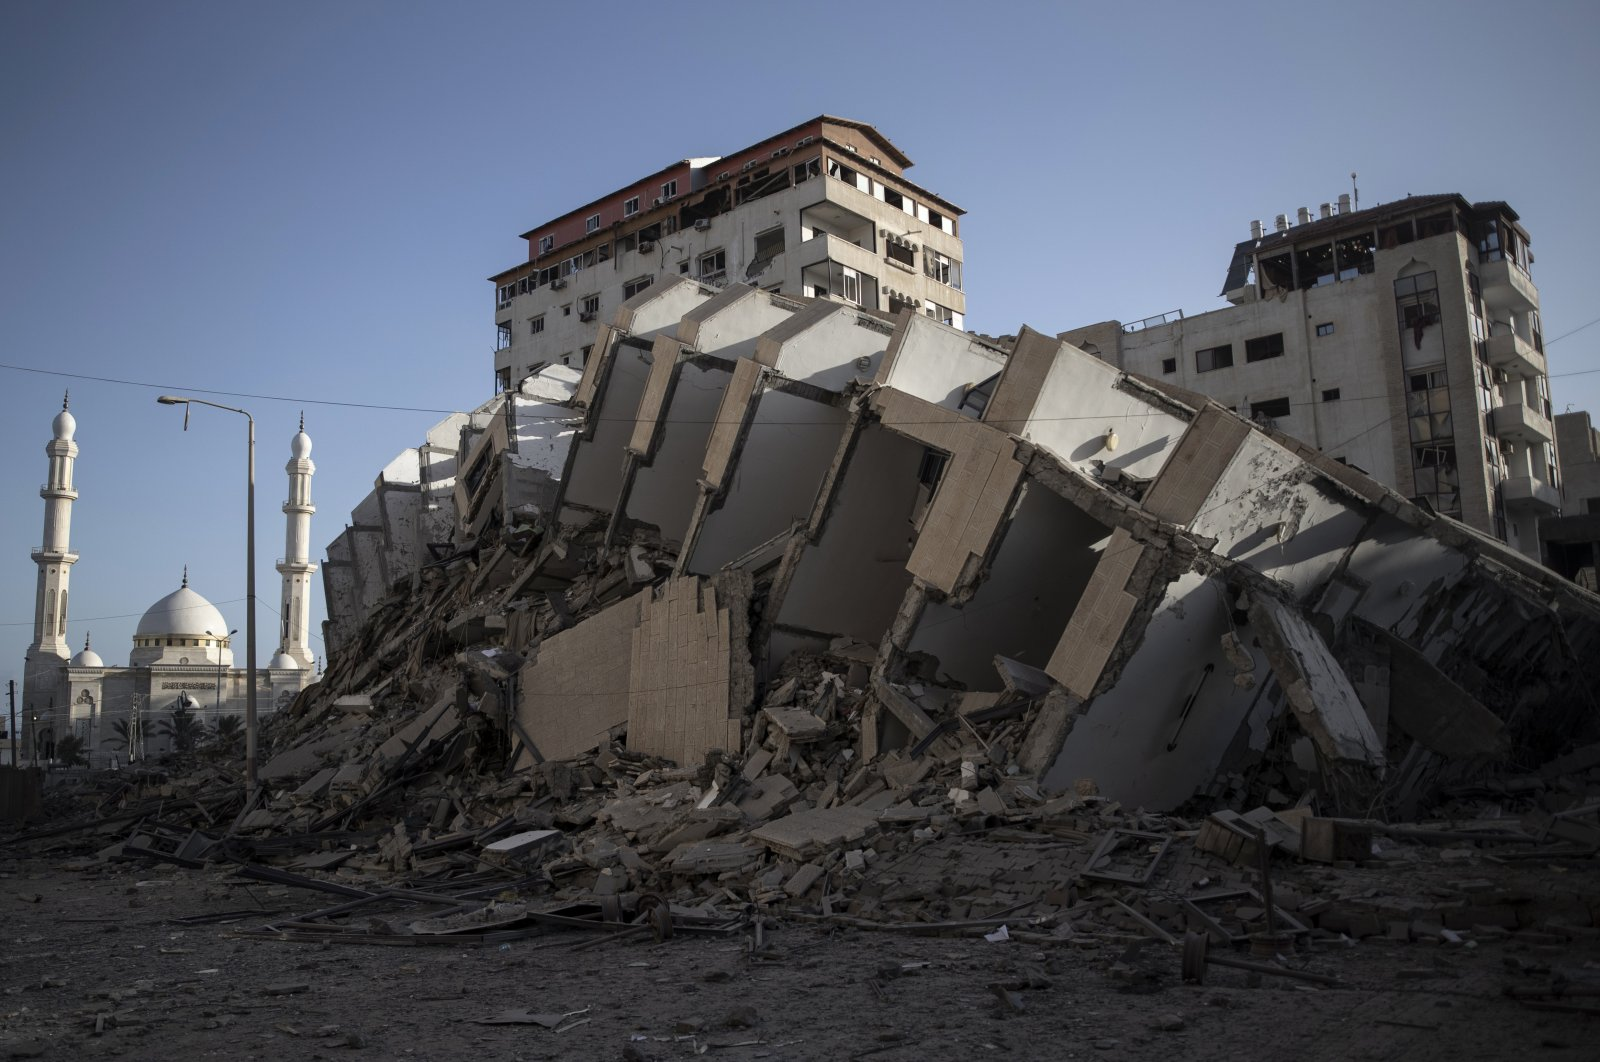 The remains of a building destroyed by Israeli airstrikes on Gaza City, Wednesday, May 12, 2021. (AP Photo)